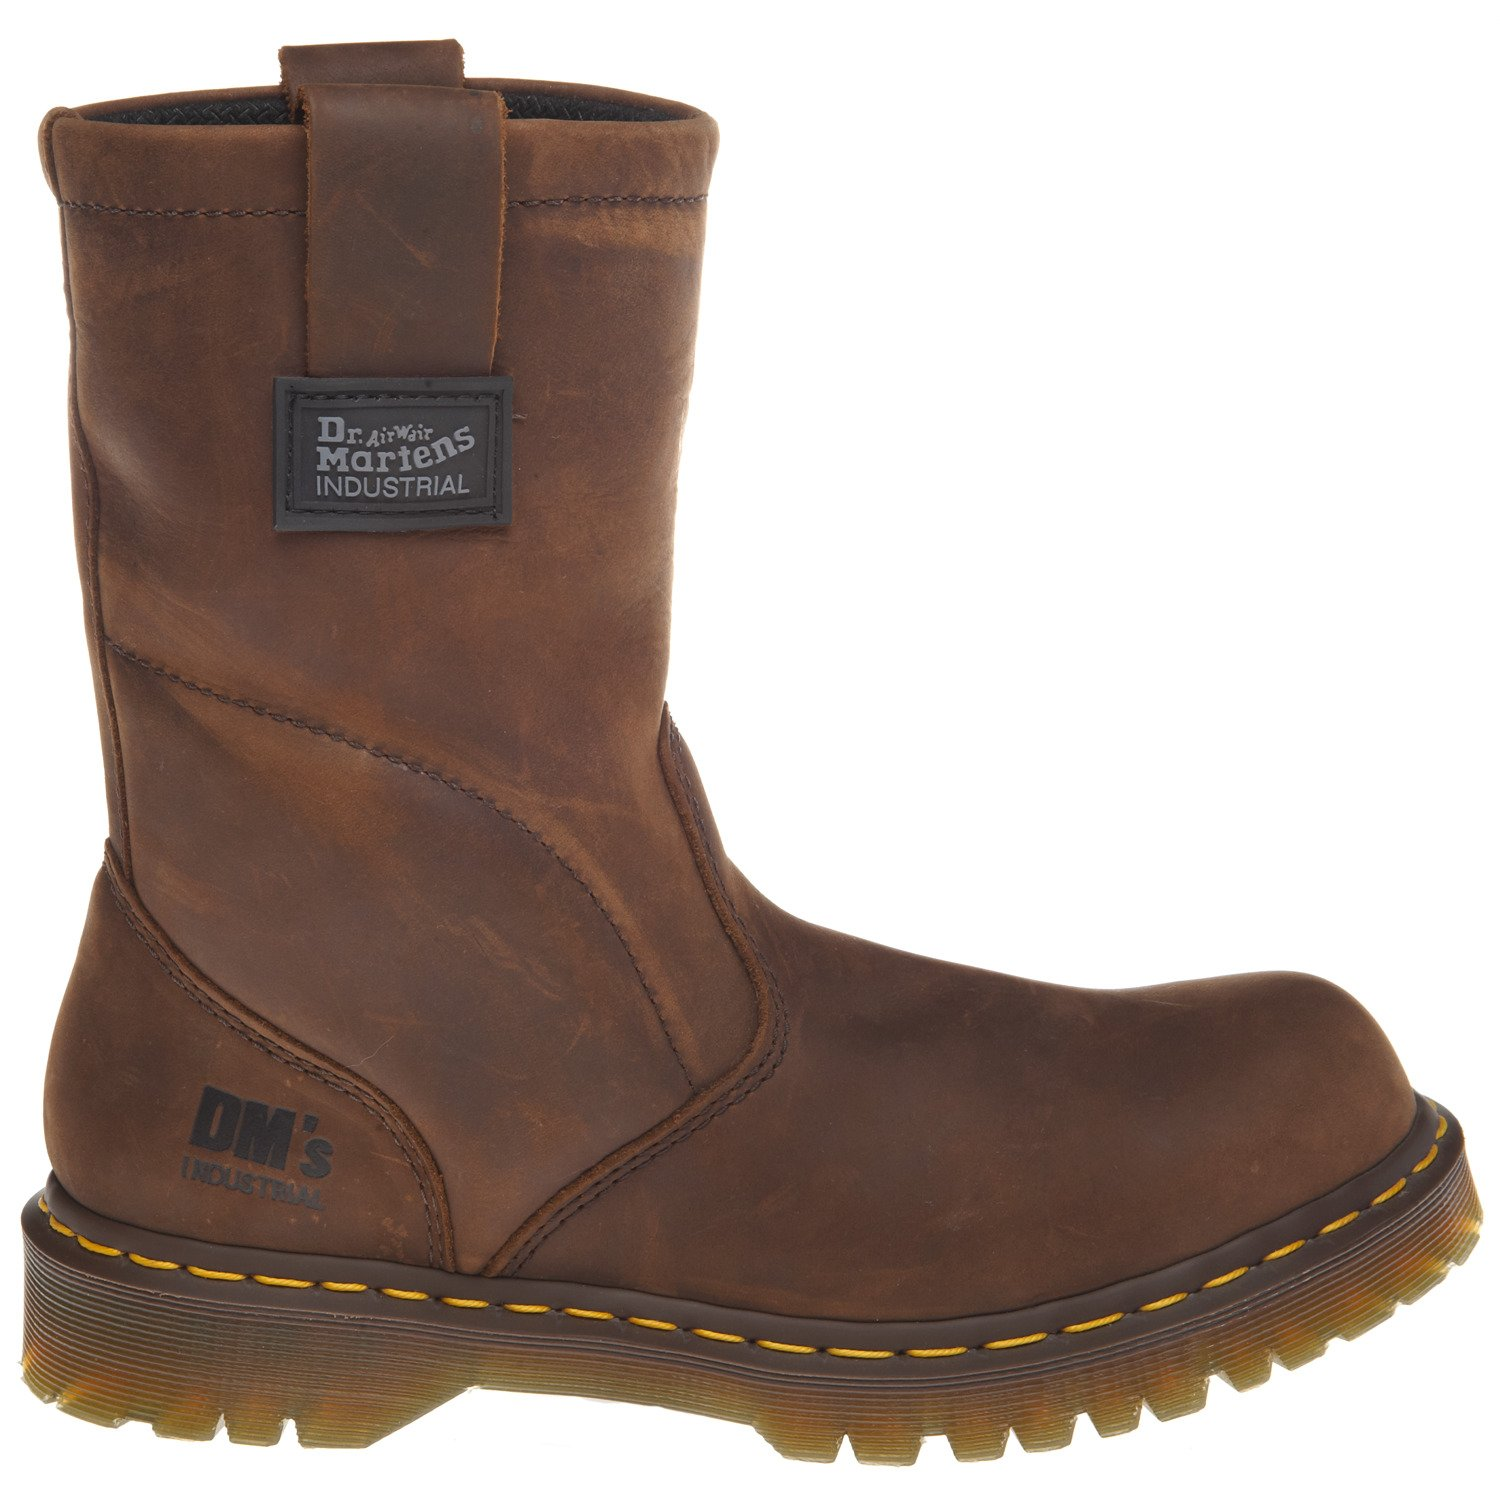 f9351aec1f7 Display product reviews for Dr. Martens Men s Industrial Wellington Work  Boots